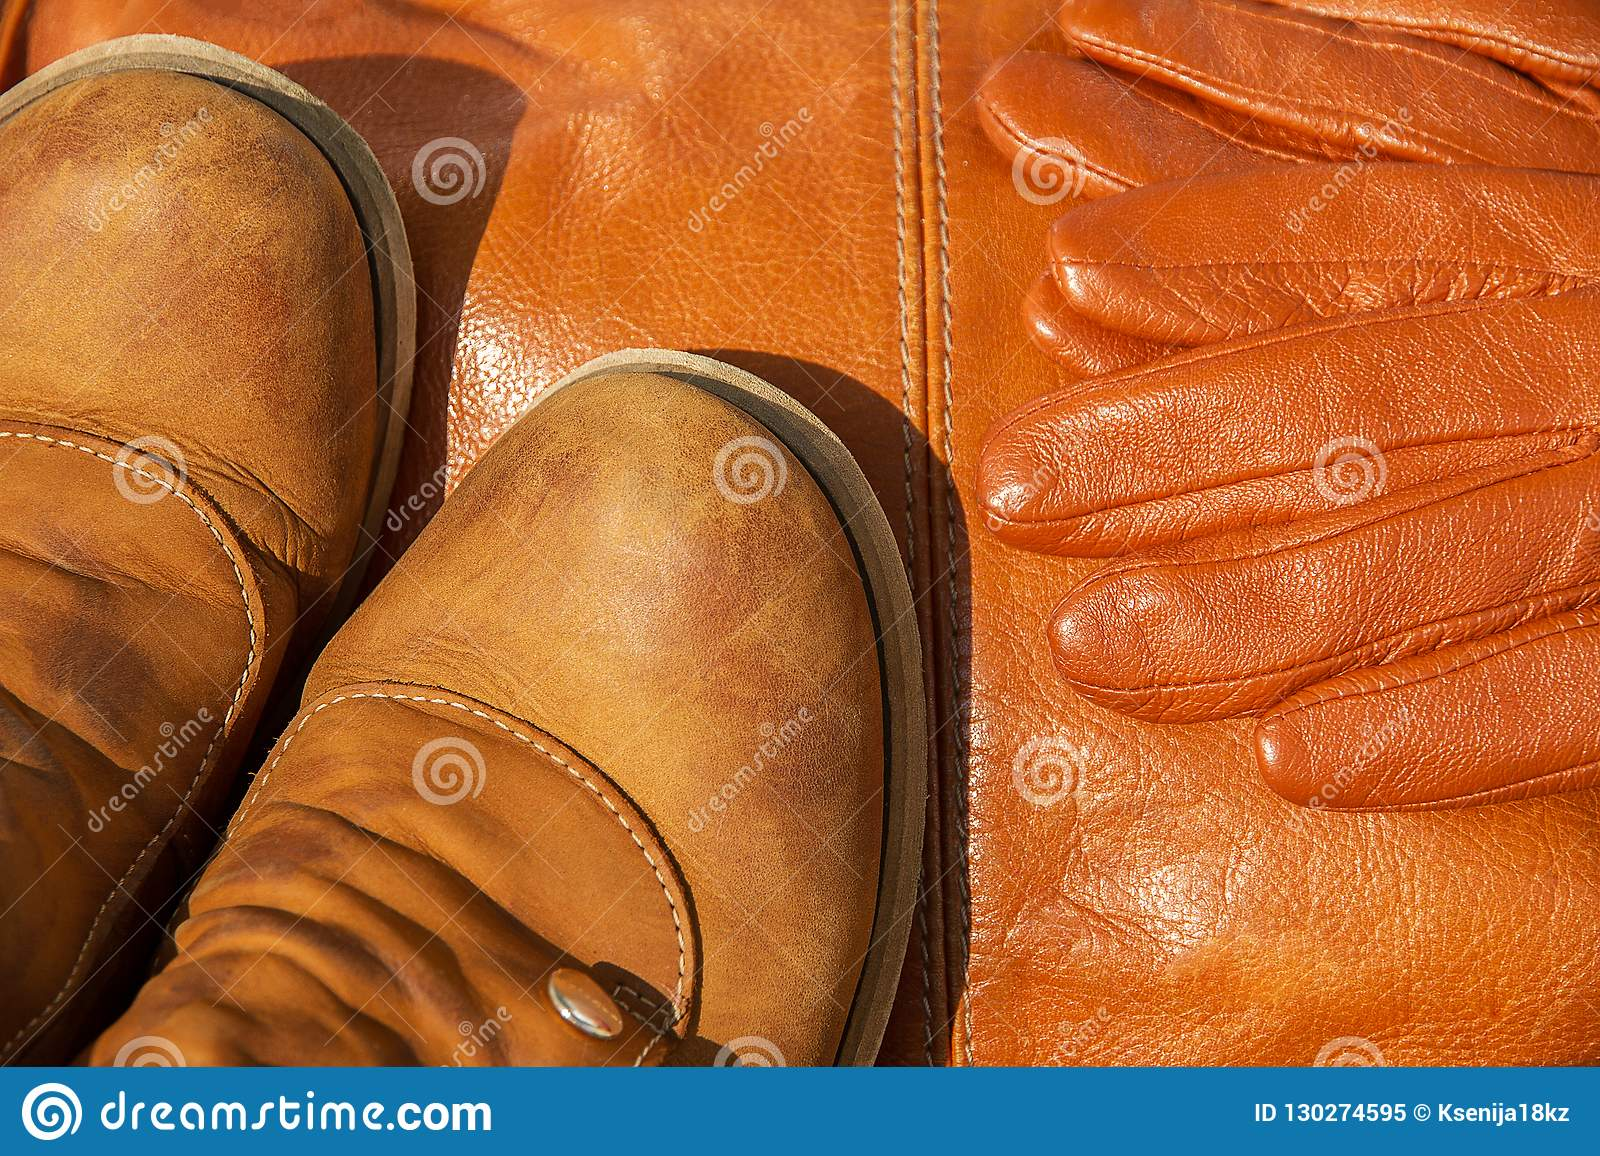 fa2aa3b4f063 Brown Leather Shoes And Gloves On Background Of Same Bag Stock Image ...